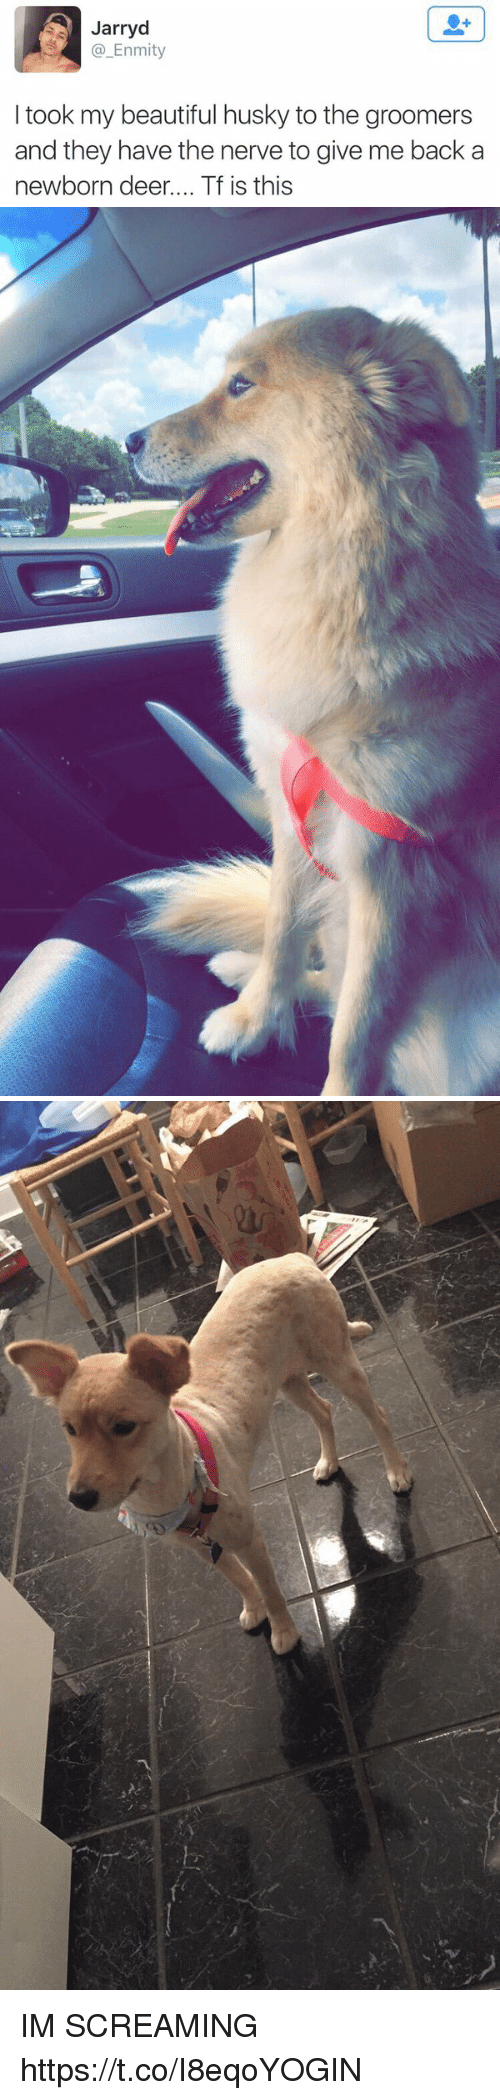 Beautiful, Deer, and Memes: Jarryd  @_Enmity  I took my beautiful husky to the groomers  and they have the nerve to give me back a  newborn deer.... Tf is this IM SCREAMING https://t.co/I8eqoYOGIN